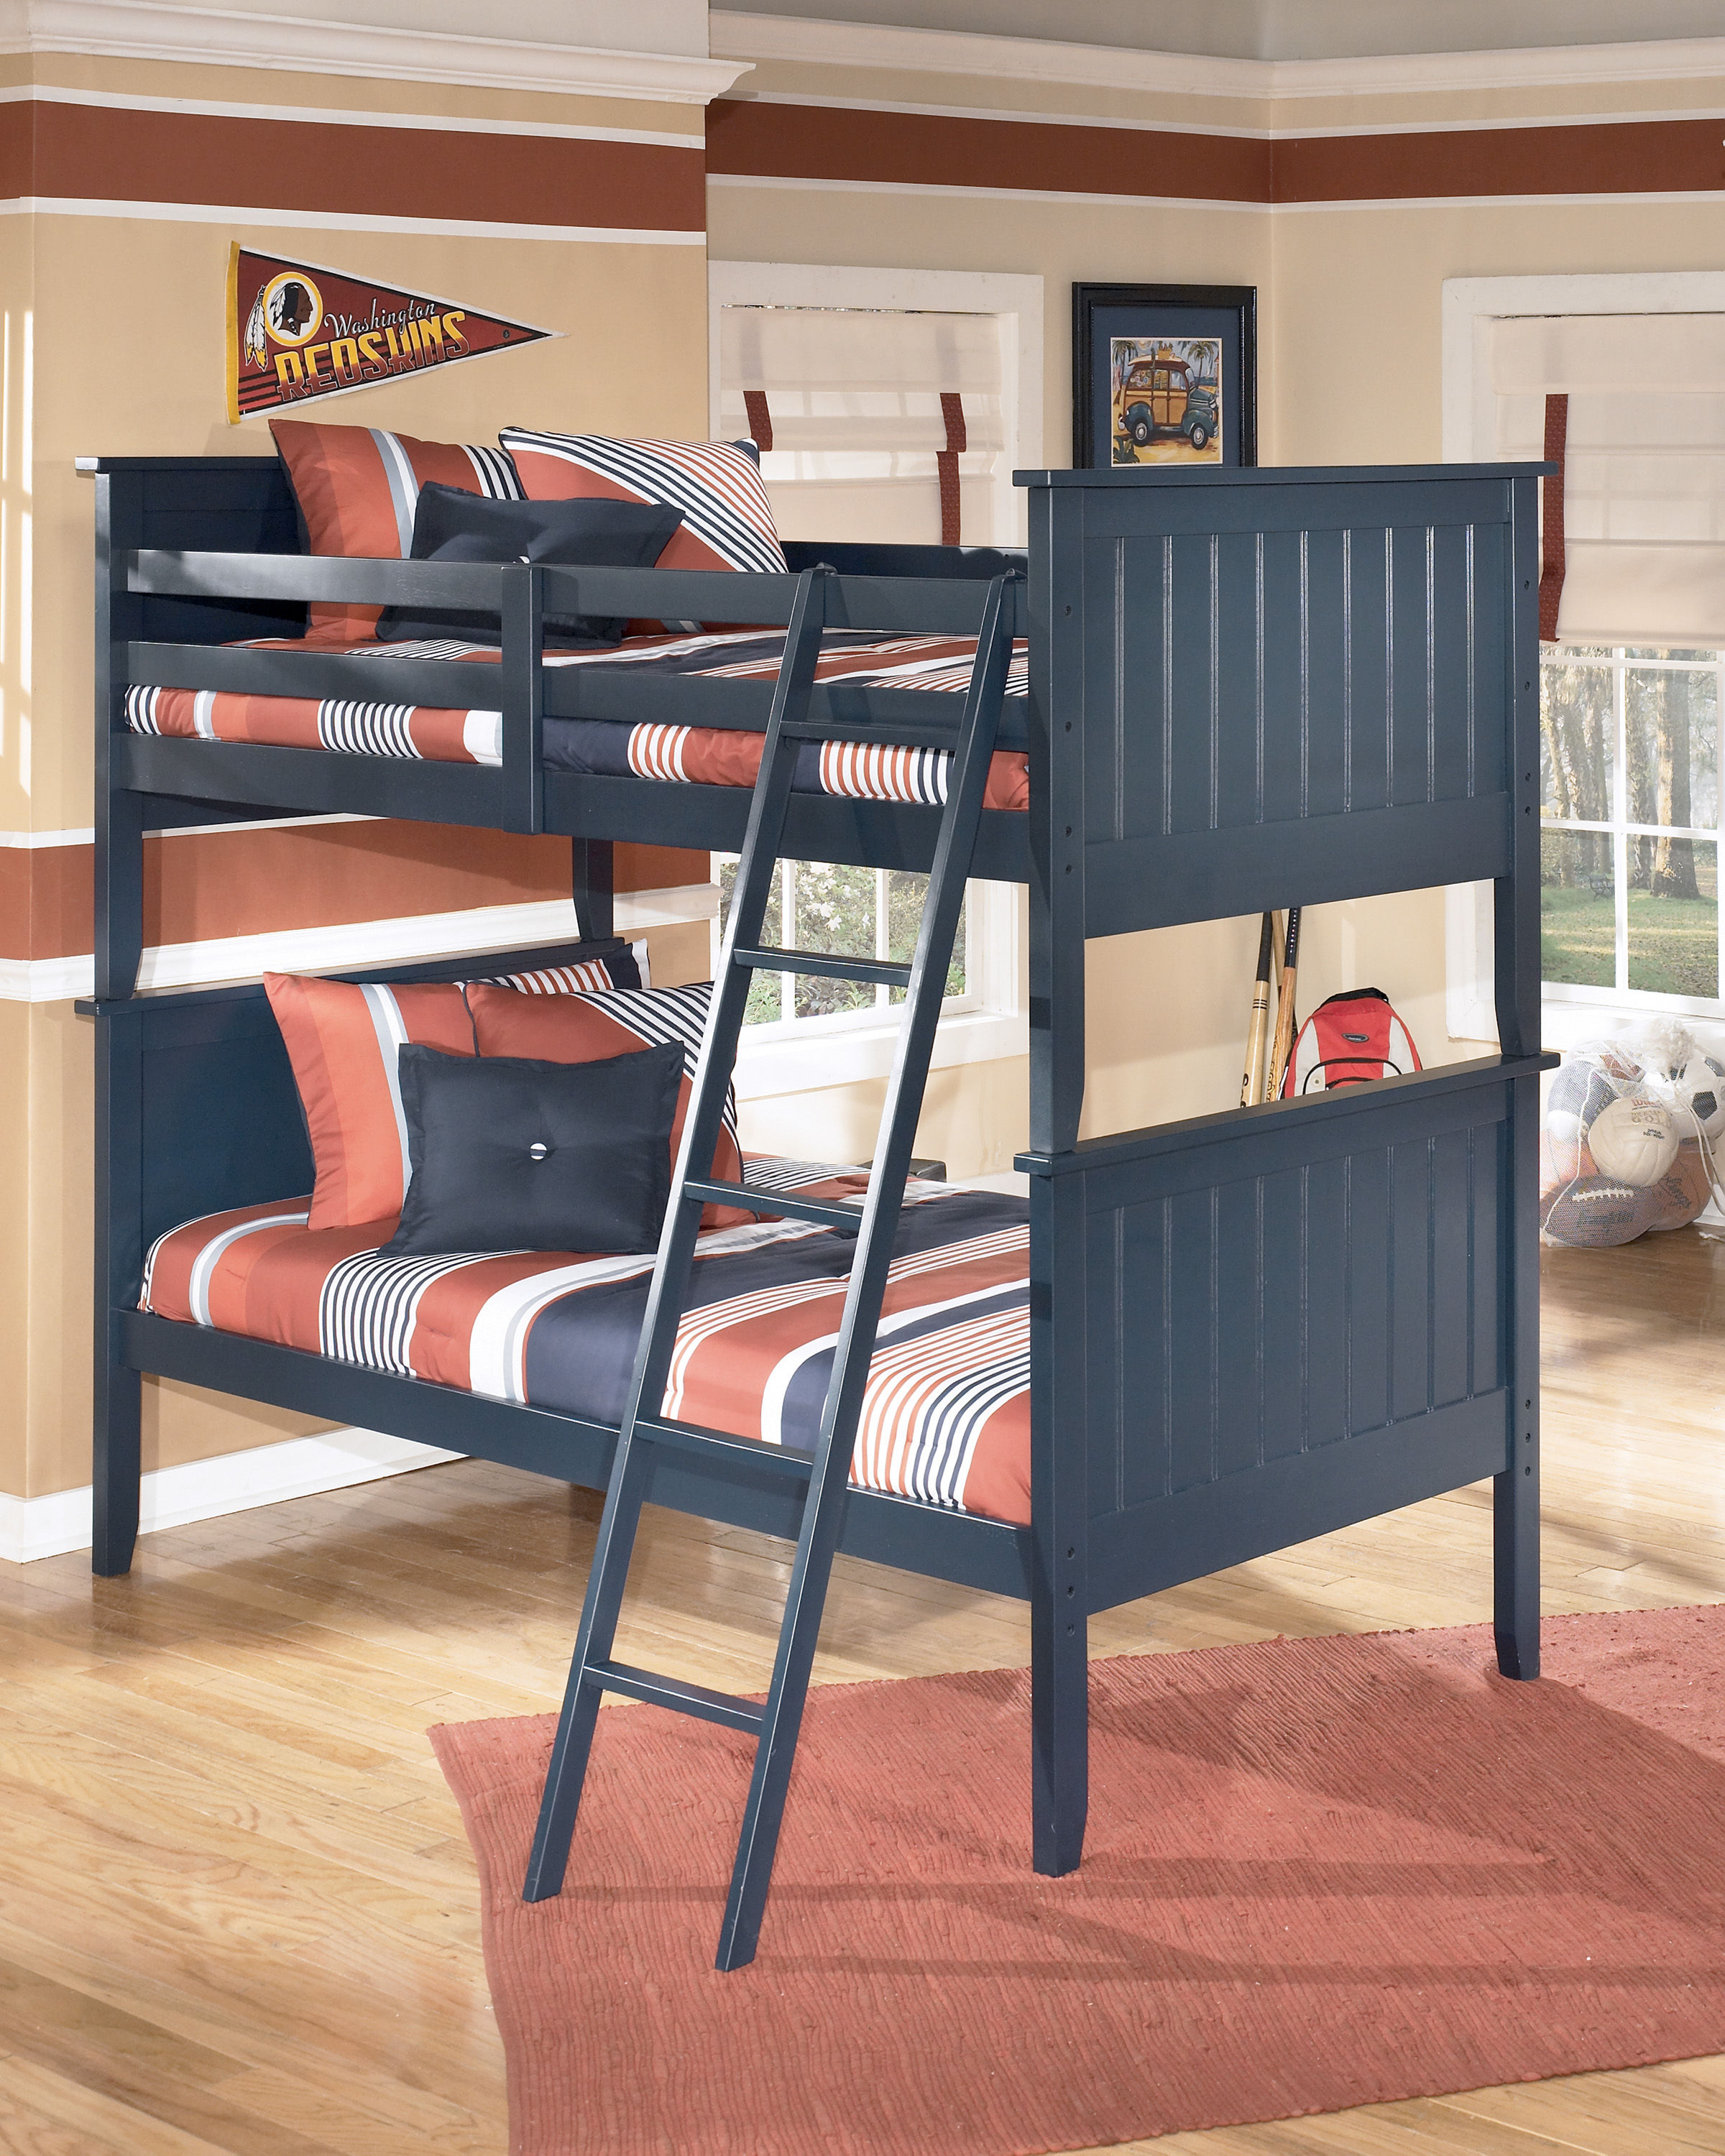 Ashley Furniture Leo Blue Bunk Bed The Classy Home